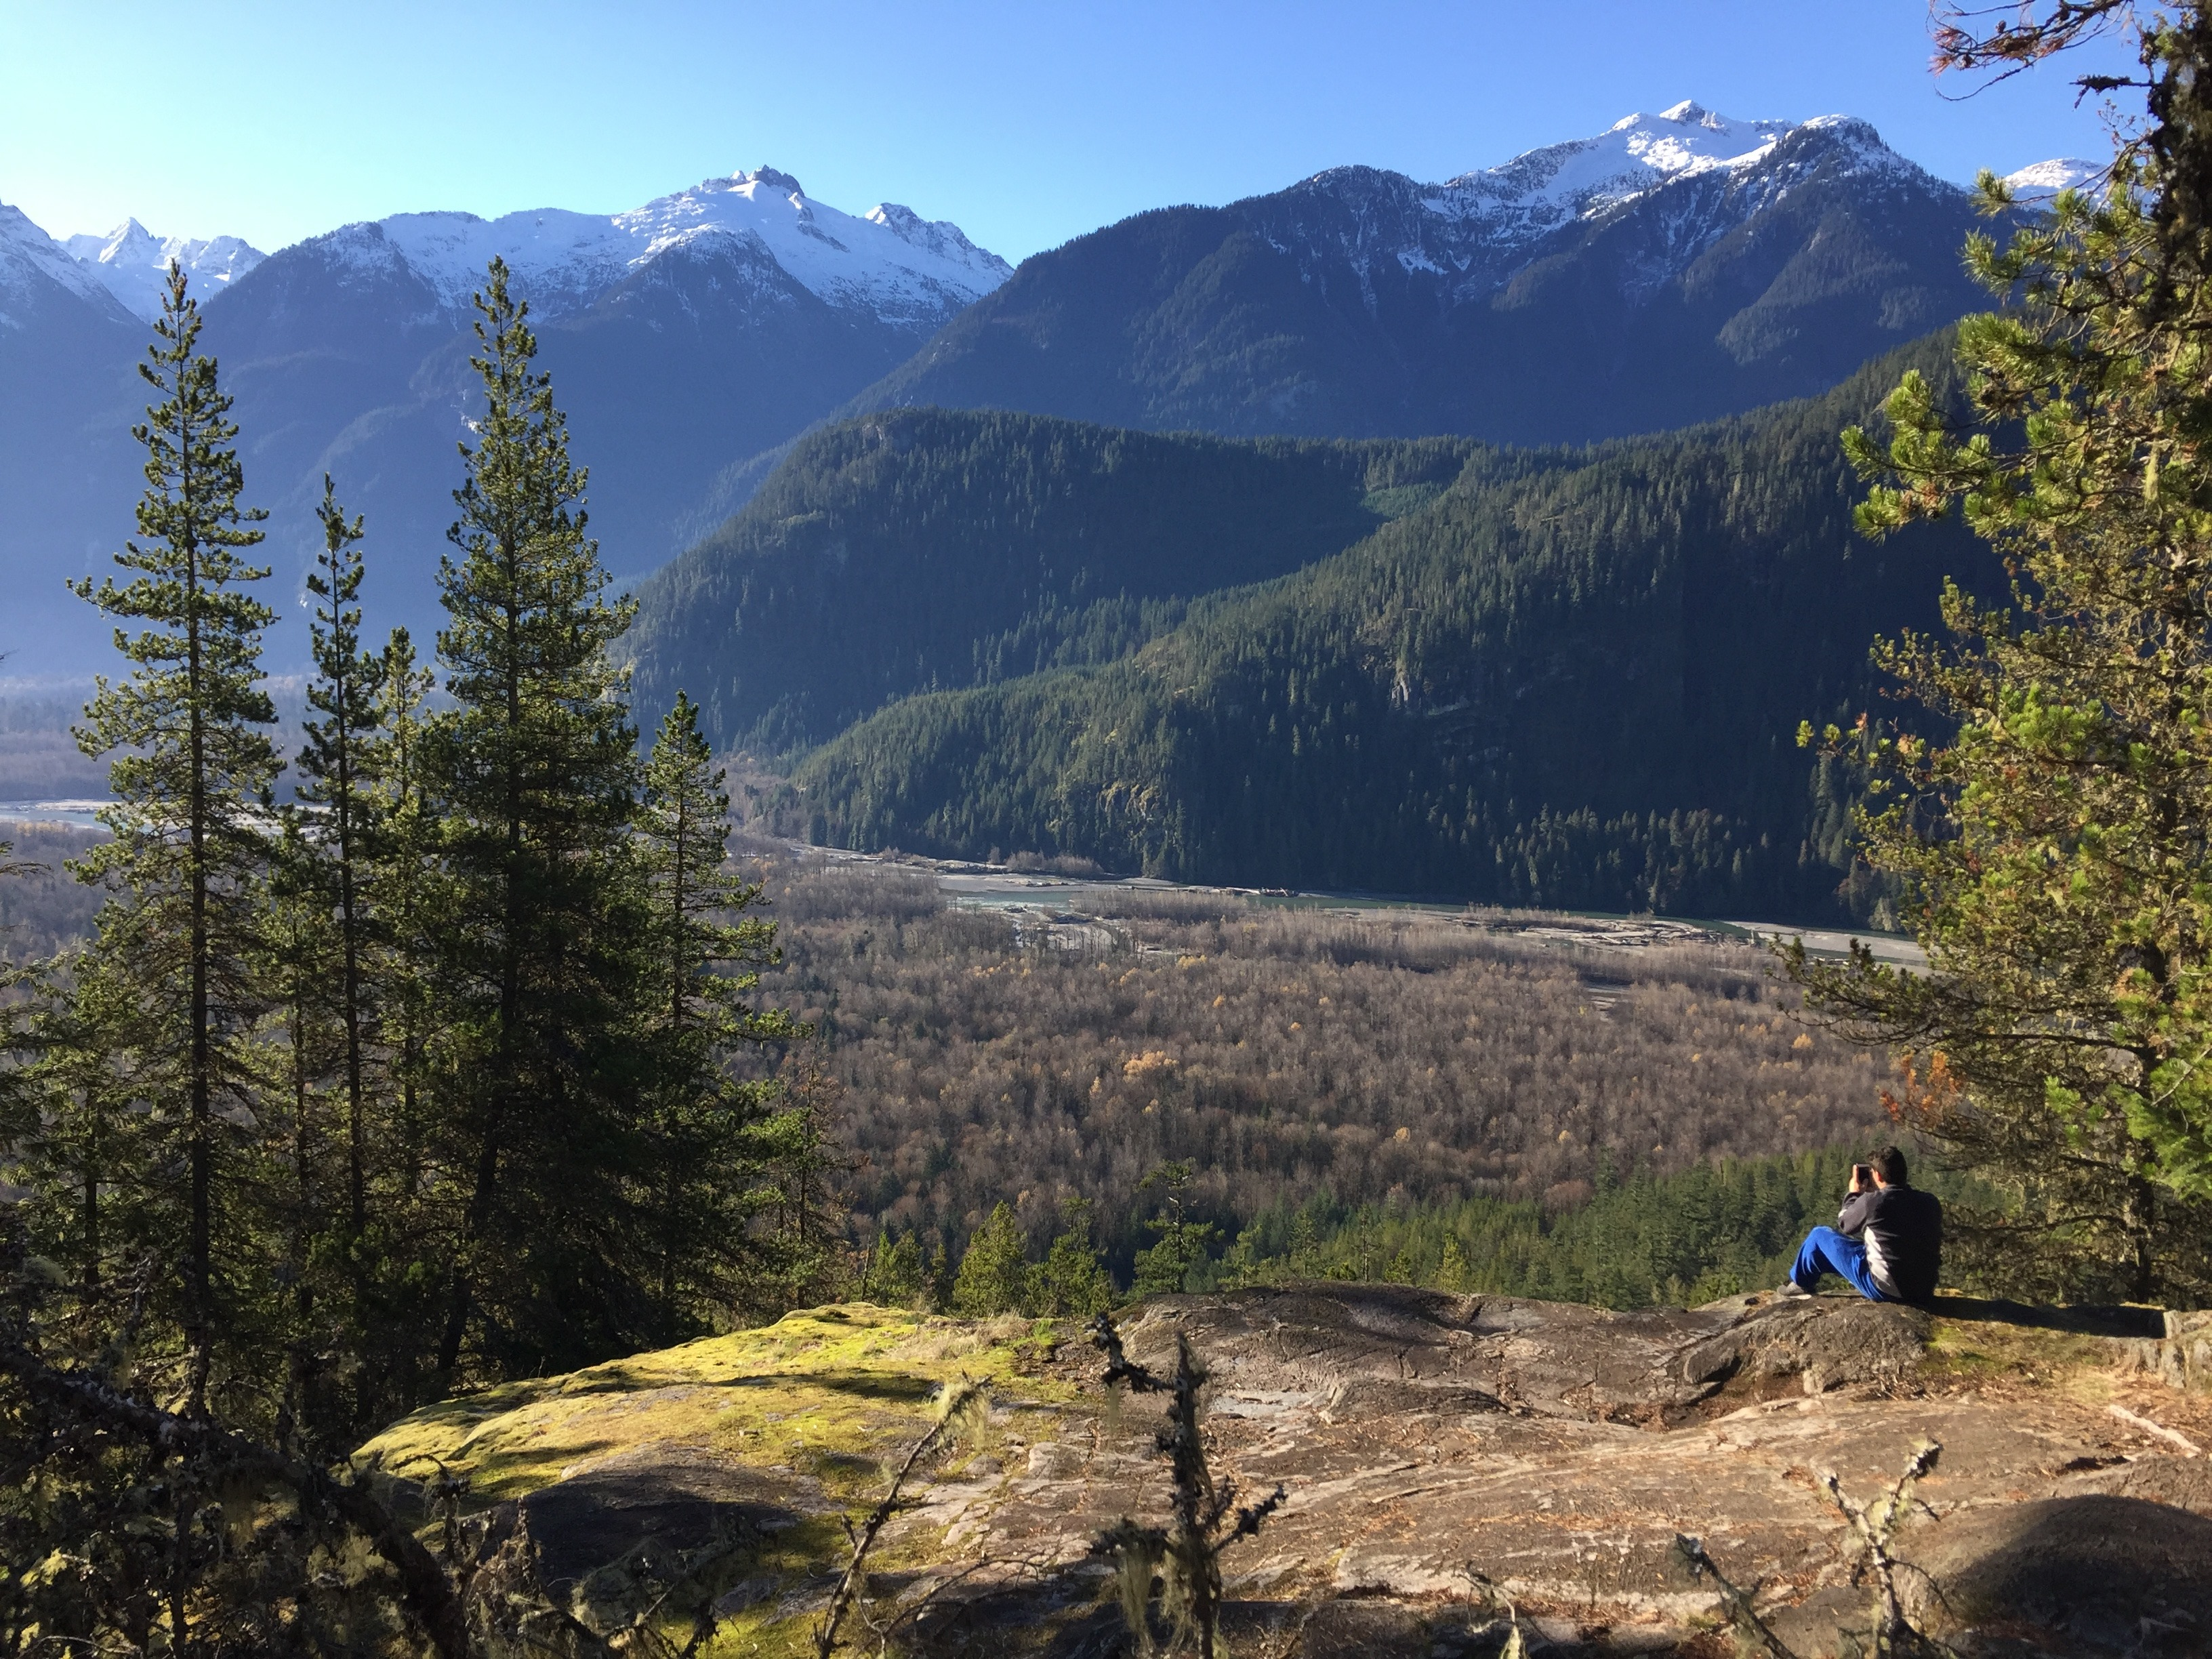 Short hikes already lead to beautiful views over the Squamish Valley